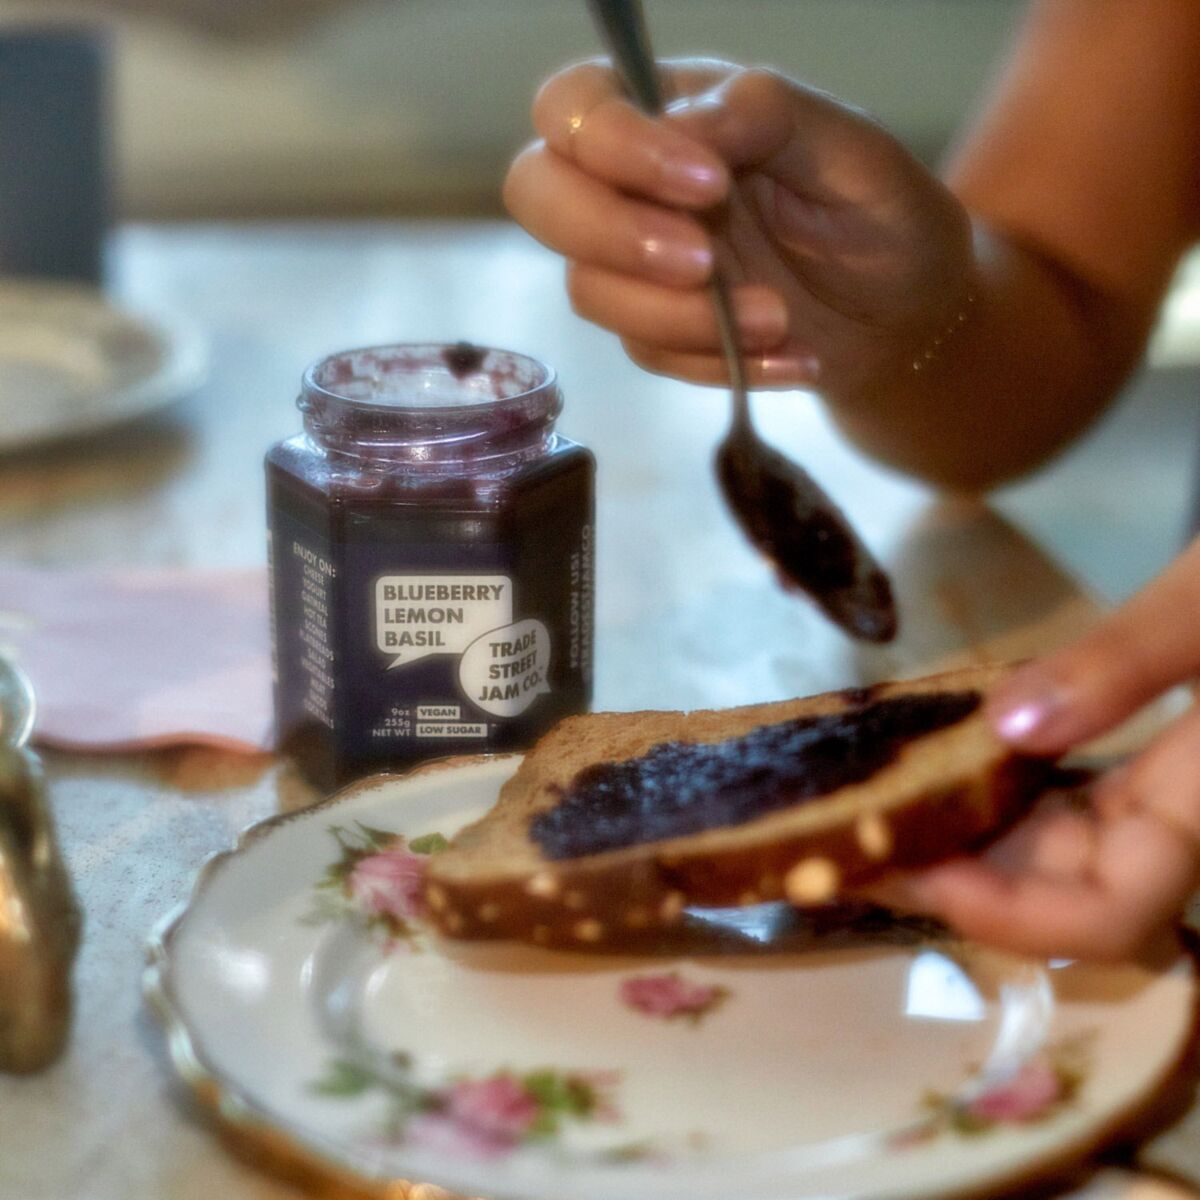 Blueberry Lemon Basil Jam image